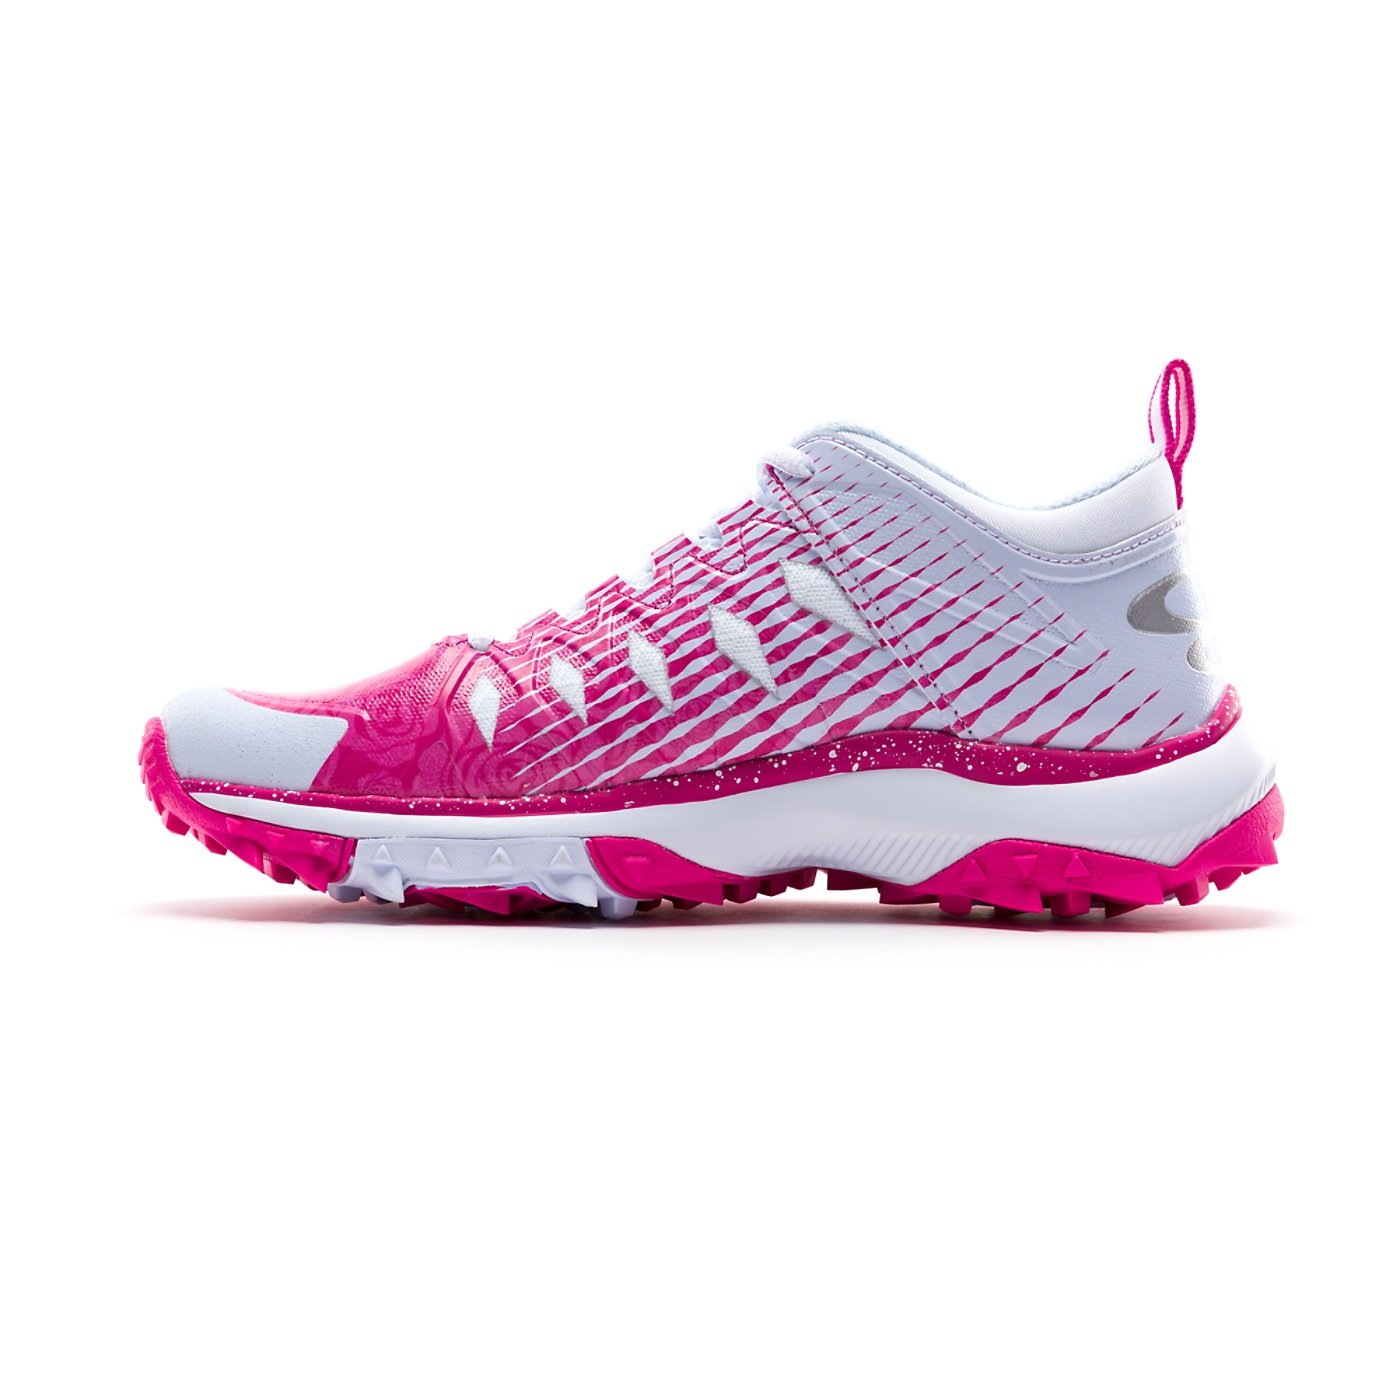 Boombah Women's Squadron Turf Shoes - 14 Color Options - Multiple Sizes B07CRPWZQM 9 White/Pink